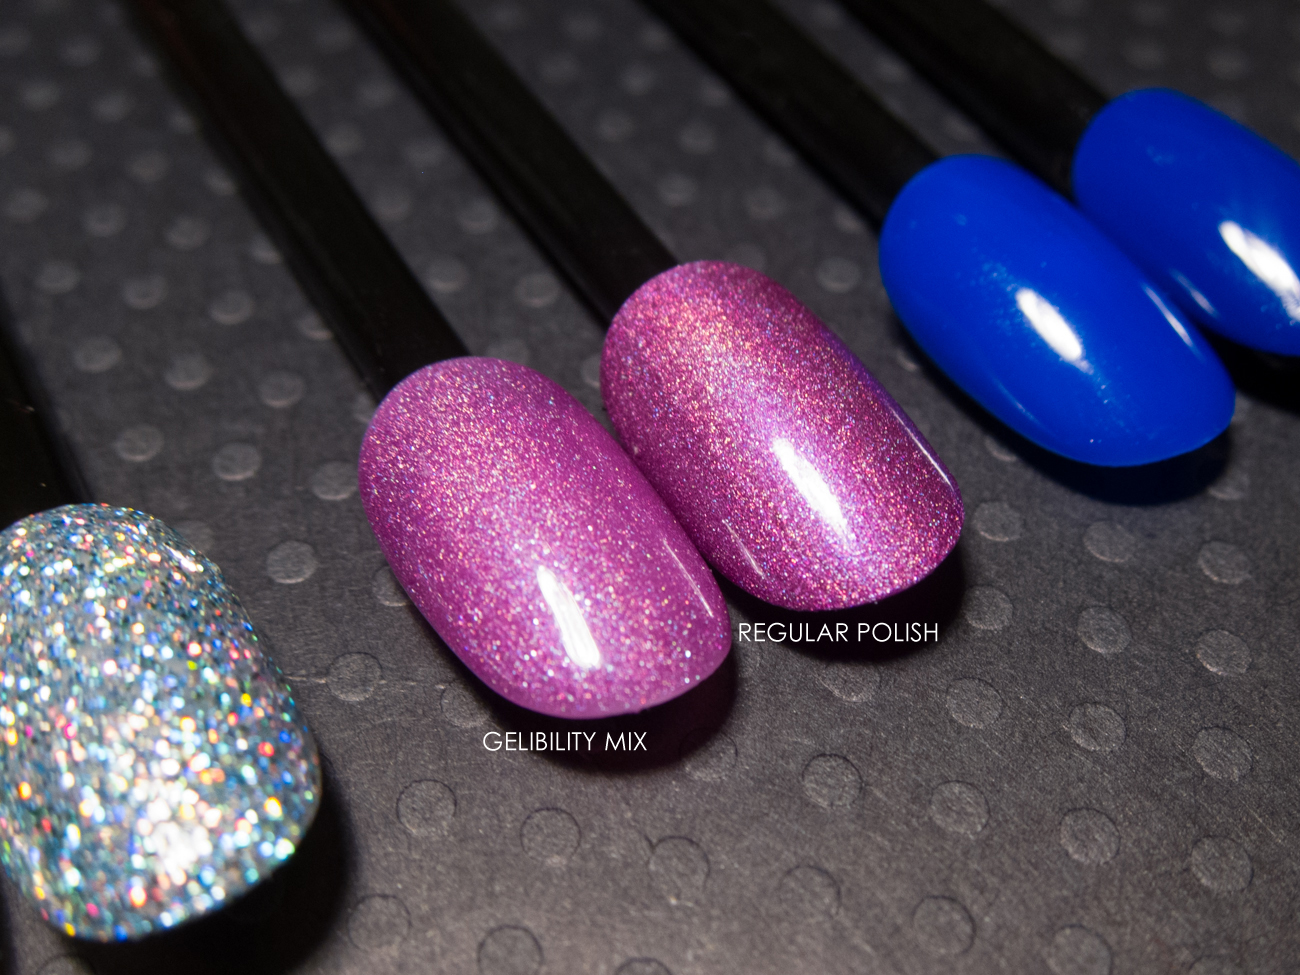 Girly Bits - Ho-Ho-Hope as a gel polish via @chalkboardnails